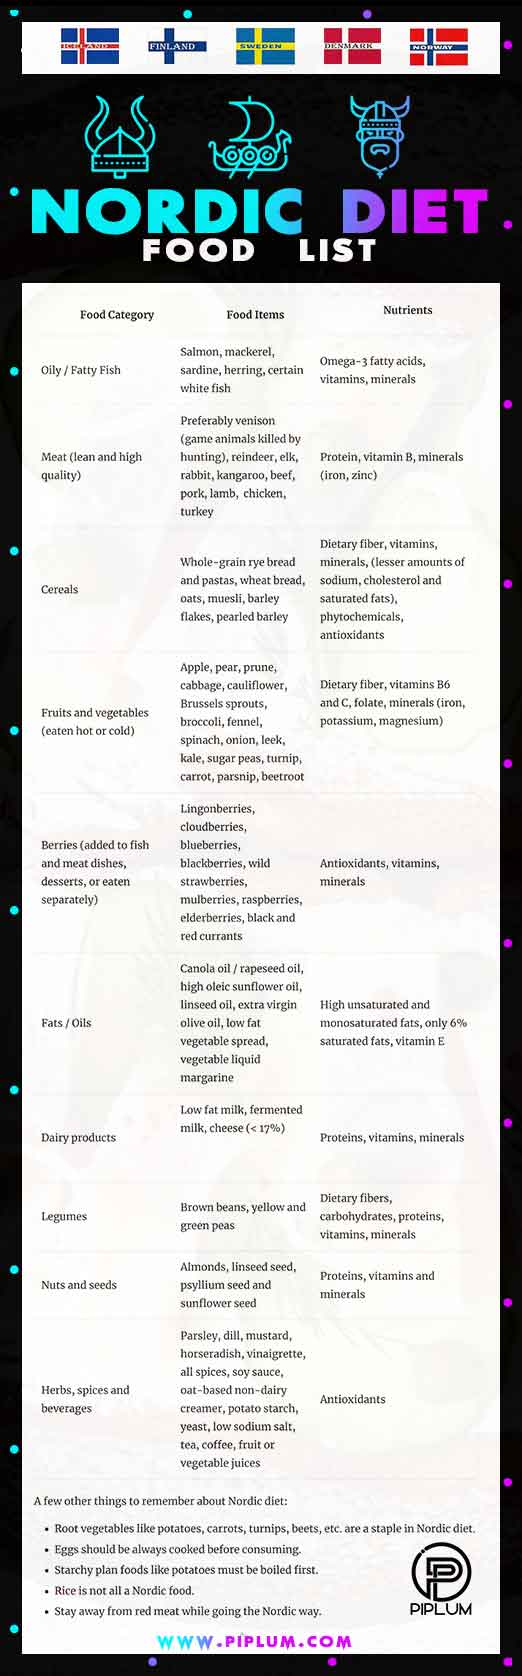 Nordic-diet-countries-food-list-poster-denmark-sweden-norway-iceland-and-finland